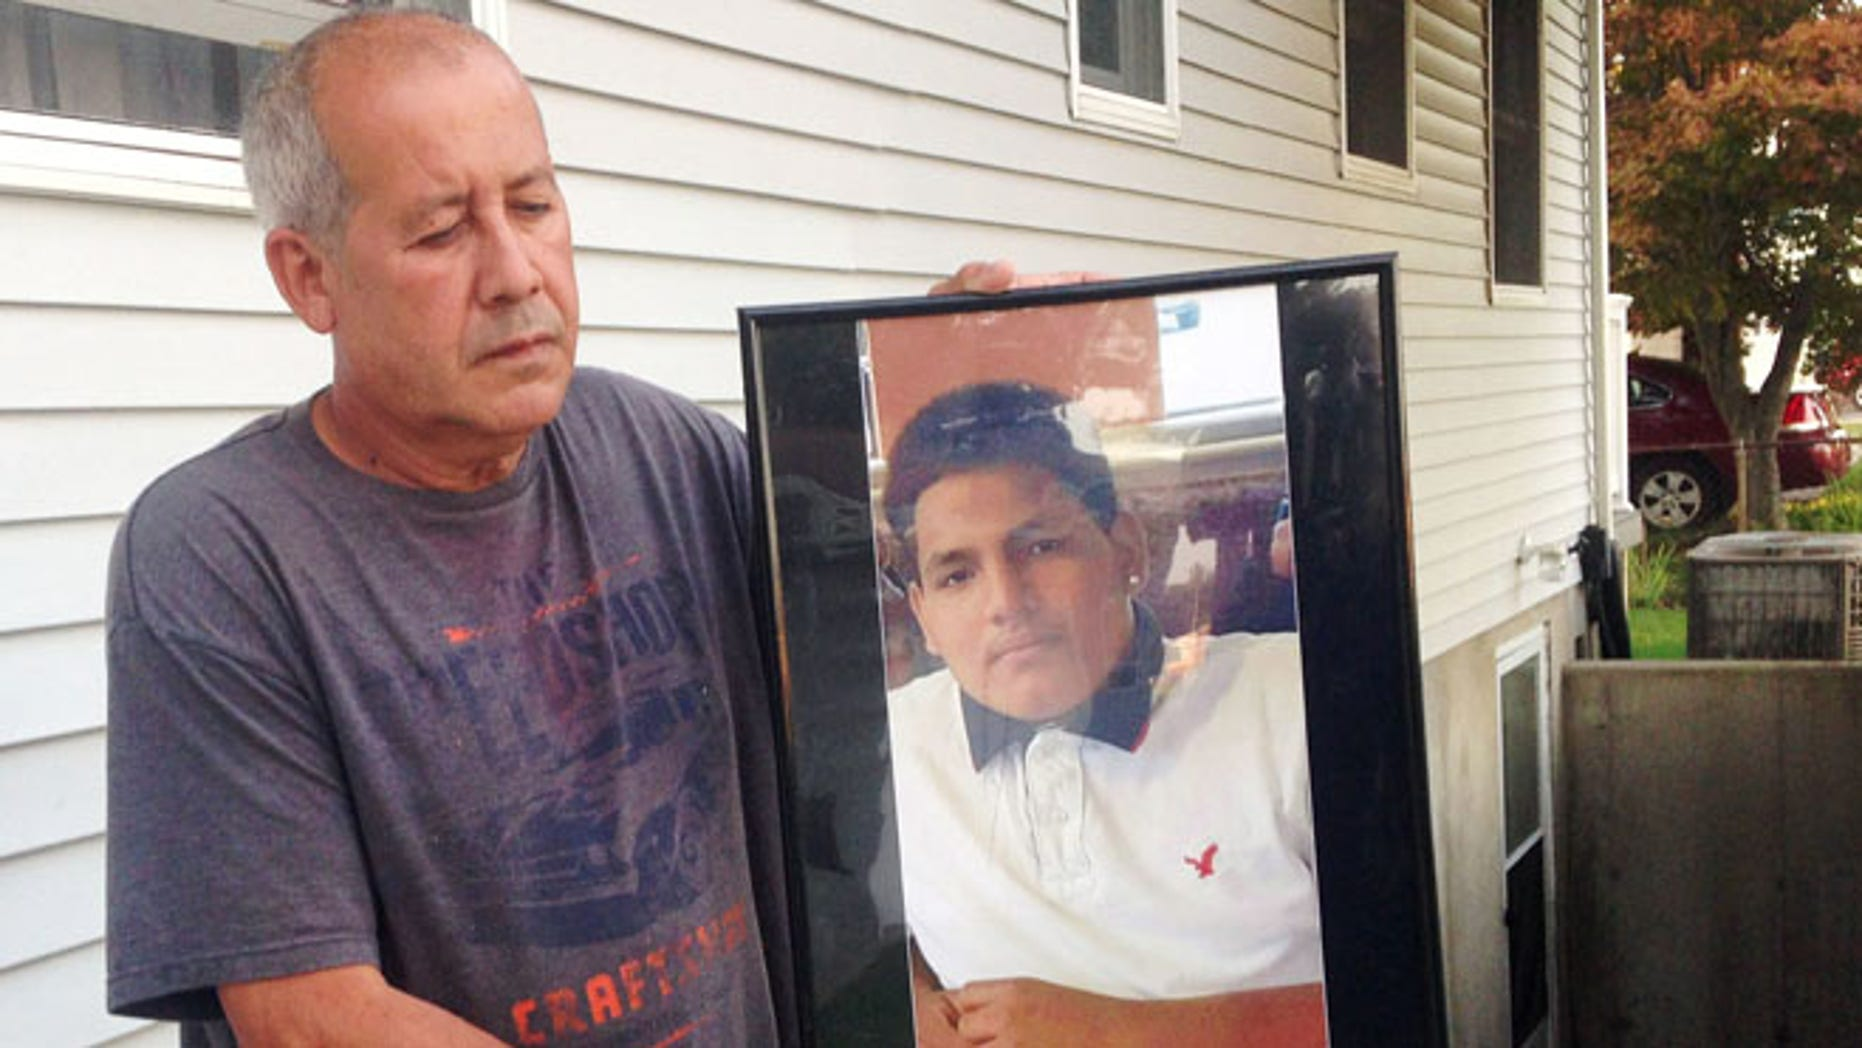 Abraham Chaparro holds a photograph of his murdered stepson Miguel Garcia-Moran, outside his home in Brentwood, N.Y.